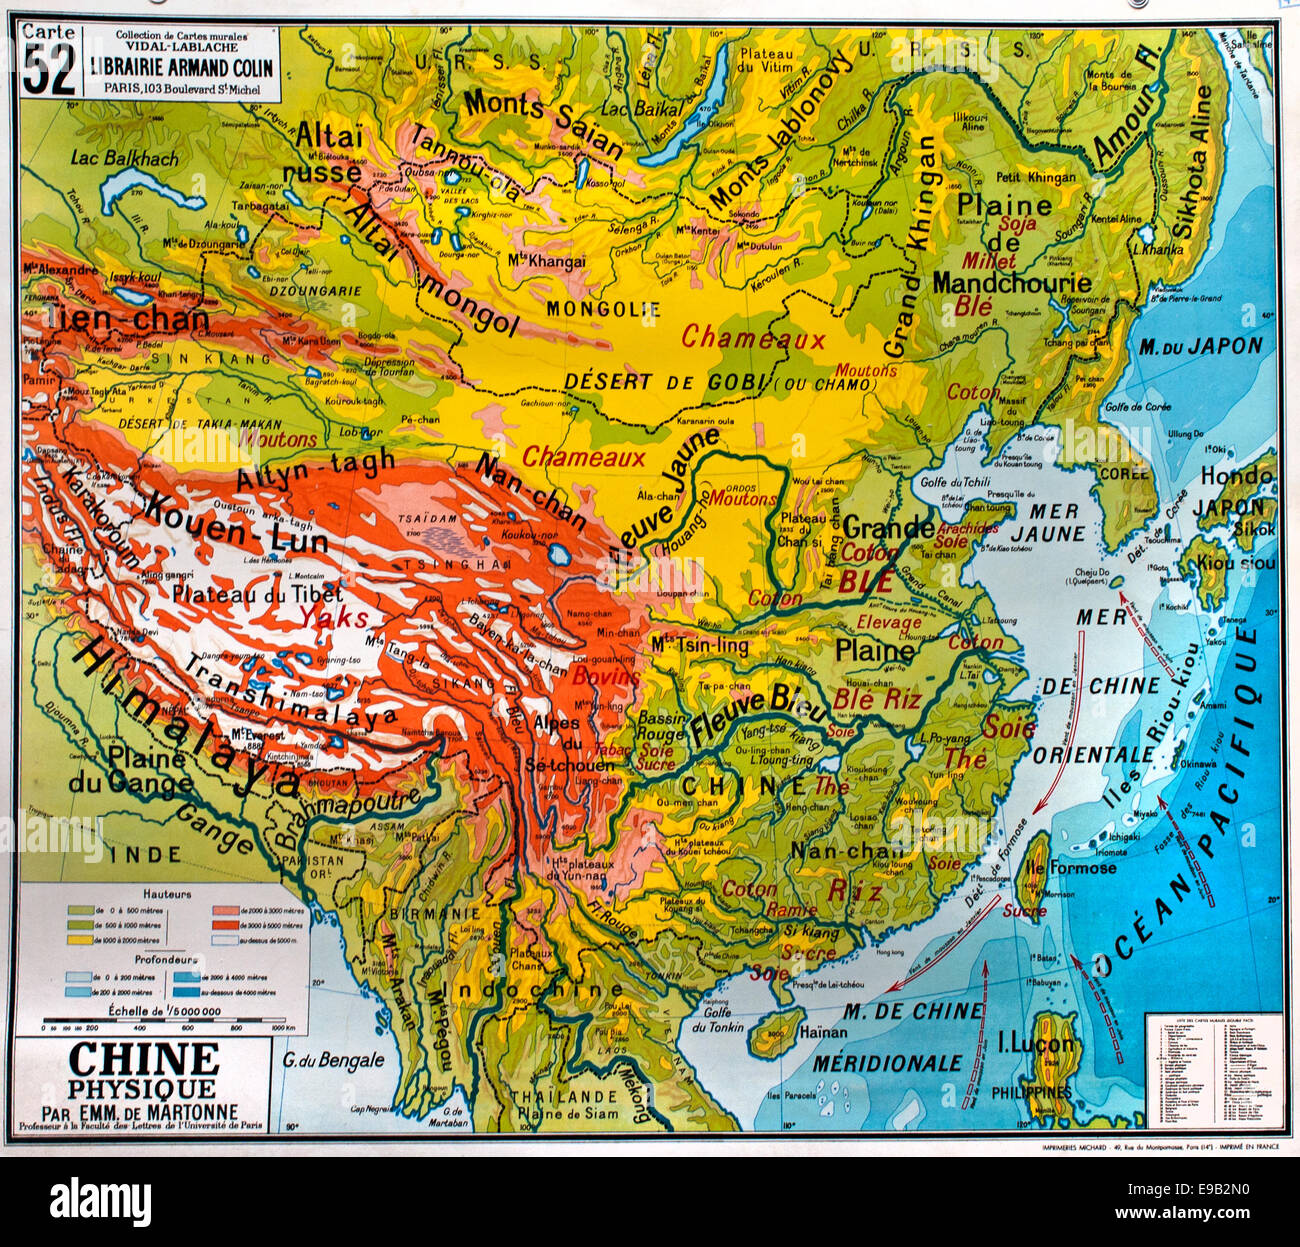 https://c8.alamy.com/comp/E9B2N0/old-school-world-wall-map-china-himalaya-french-cartography-E9B2N0.jpg